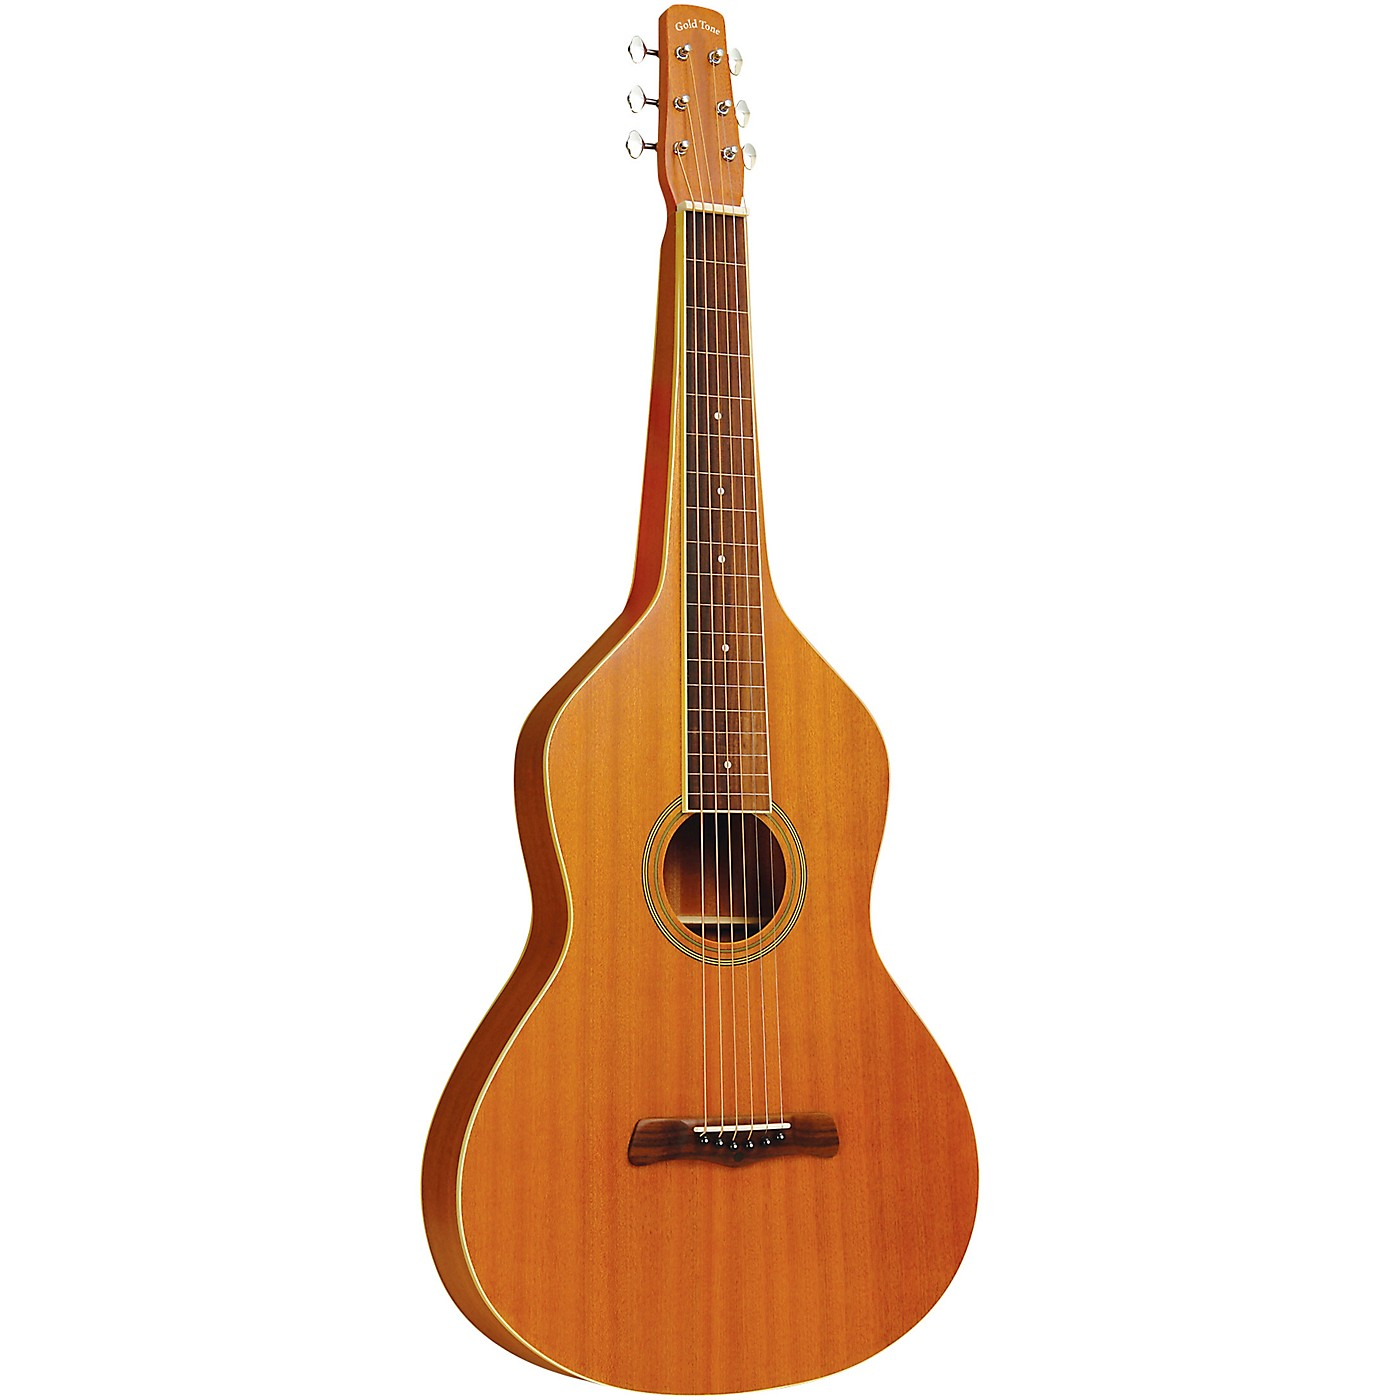 Gold Tone GT-Weissenborn Left-Handed Hawaiian-Style LapSteel Guitar with Gig Bag thumbnail